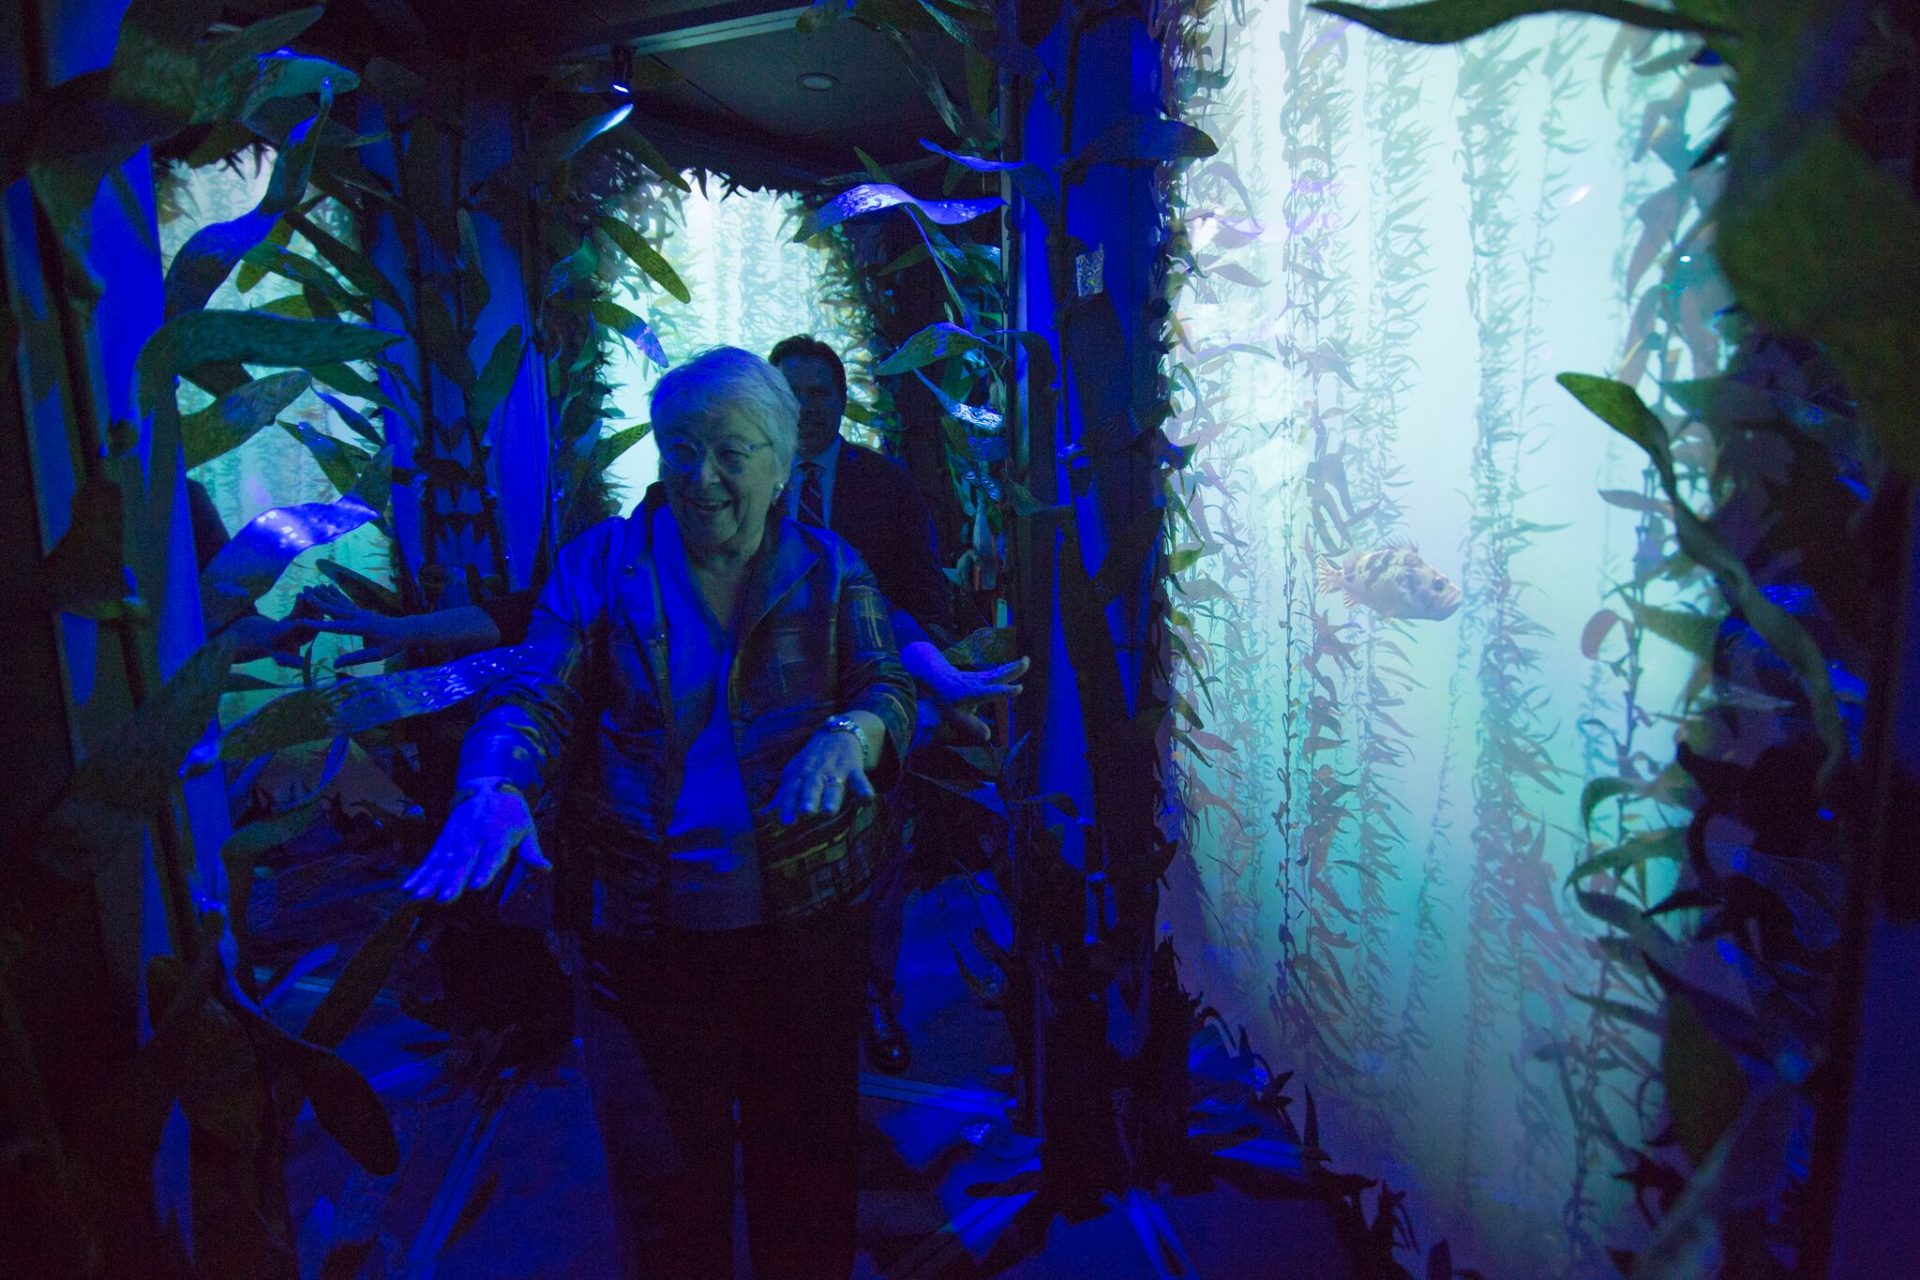 The kelp forest mirror maze at the National Geographic Encounter: Ocean Odyssey